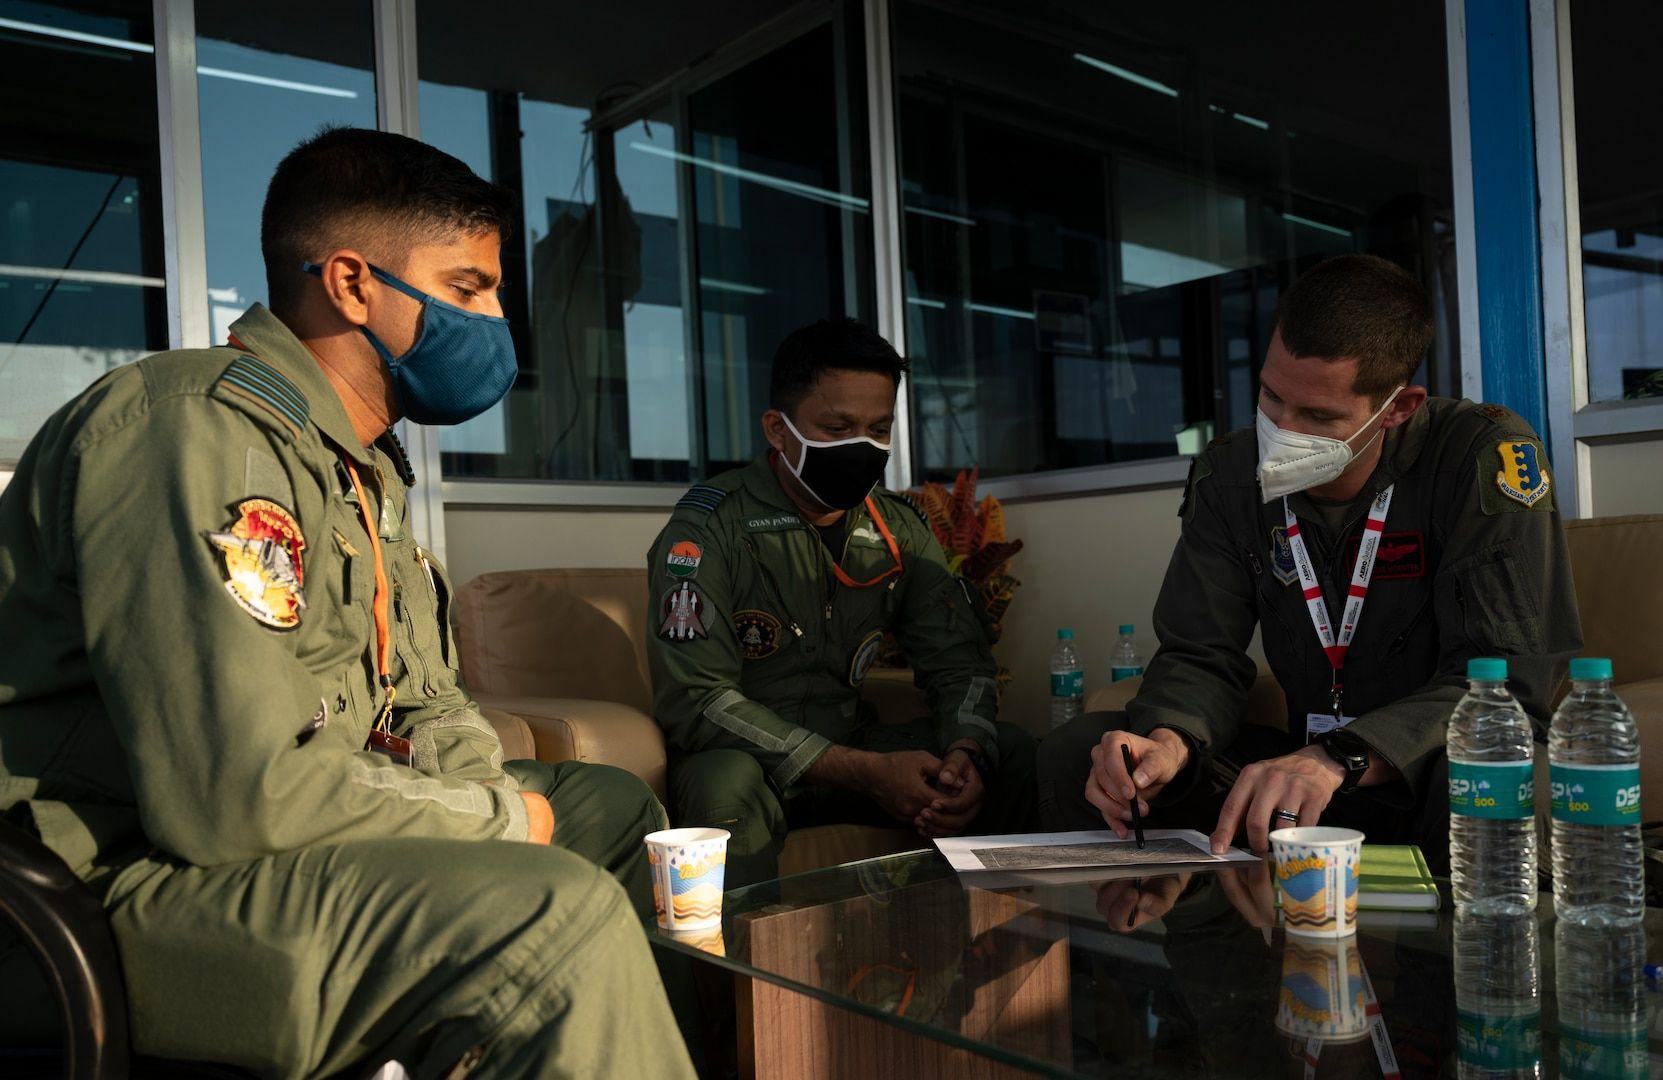 Maj. Andrew Moenter, a 34th Expeditionary Bomb Squadron pilot, meets with Indian Air Force pilots in preparation of the B-1B Lancer's participation in Aero India 2021, at Yelahanka Air Force Base in Bengaluru, India, Feb. 1, 2021. Aero India is an ideal forum to showcase U.S. defense aircraft and equipment and ultimately contribute toward compatibility and interoperability with other countries. (U.S. Air Force photo by Senior Airman Christina Bennett)